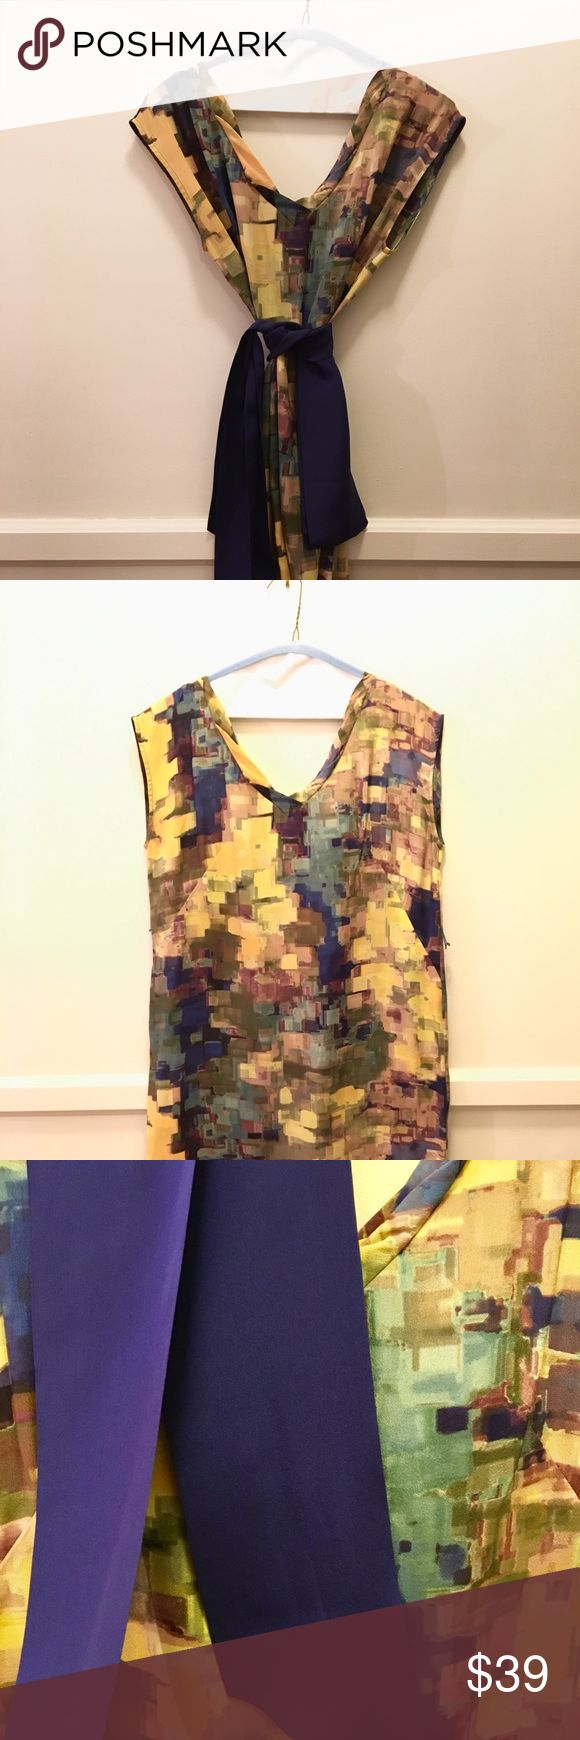 """Anthropologie Maeve dress 100% silk dress in watercolor block pattern with indigo sash. Incredibly flattering mini, size 4. Worn once, impeccable condition. Worn by 5'7"""" and 130 lbs, curvy figure. Anthropologie Dresses Mini"""